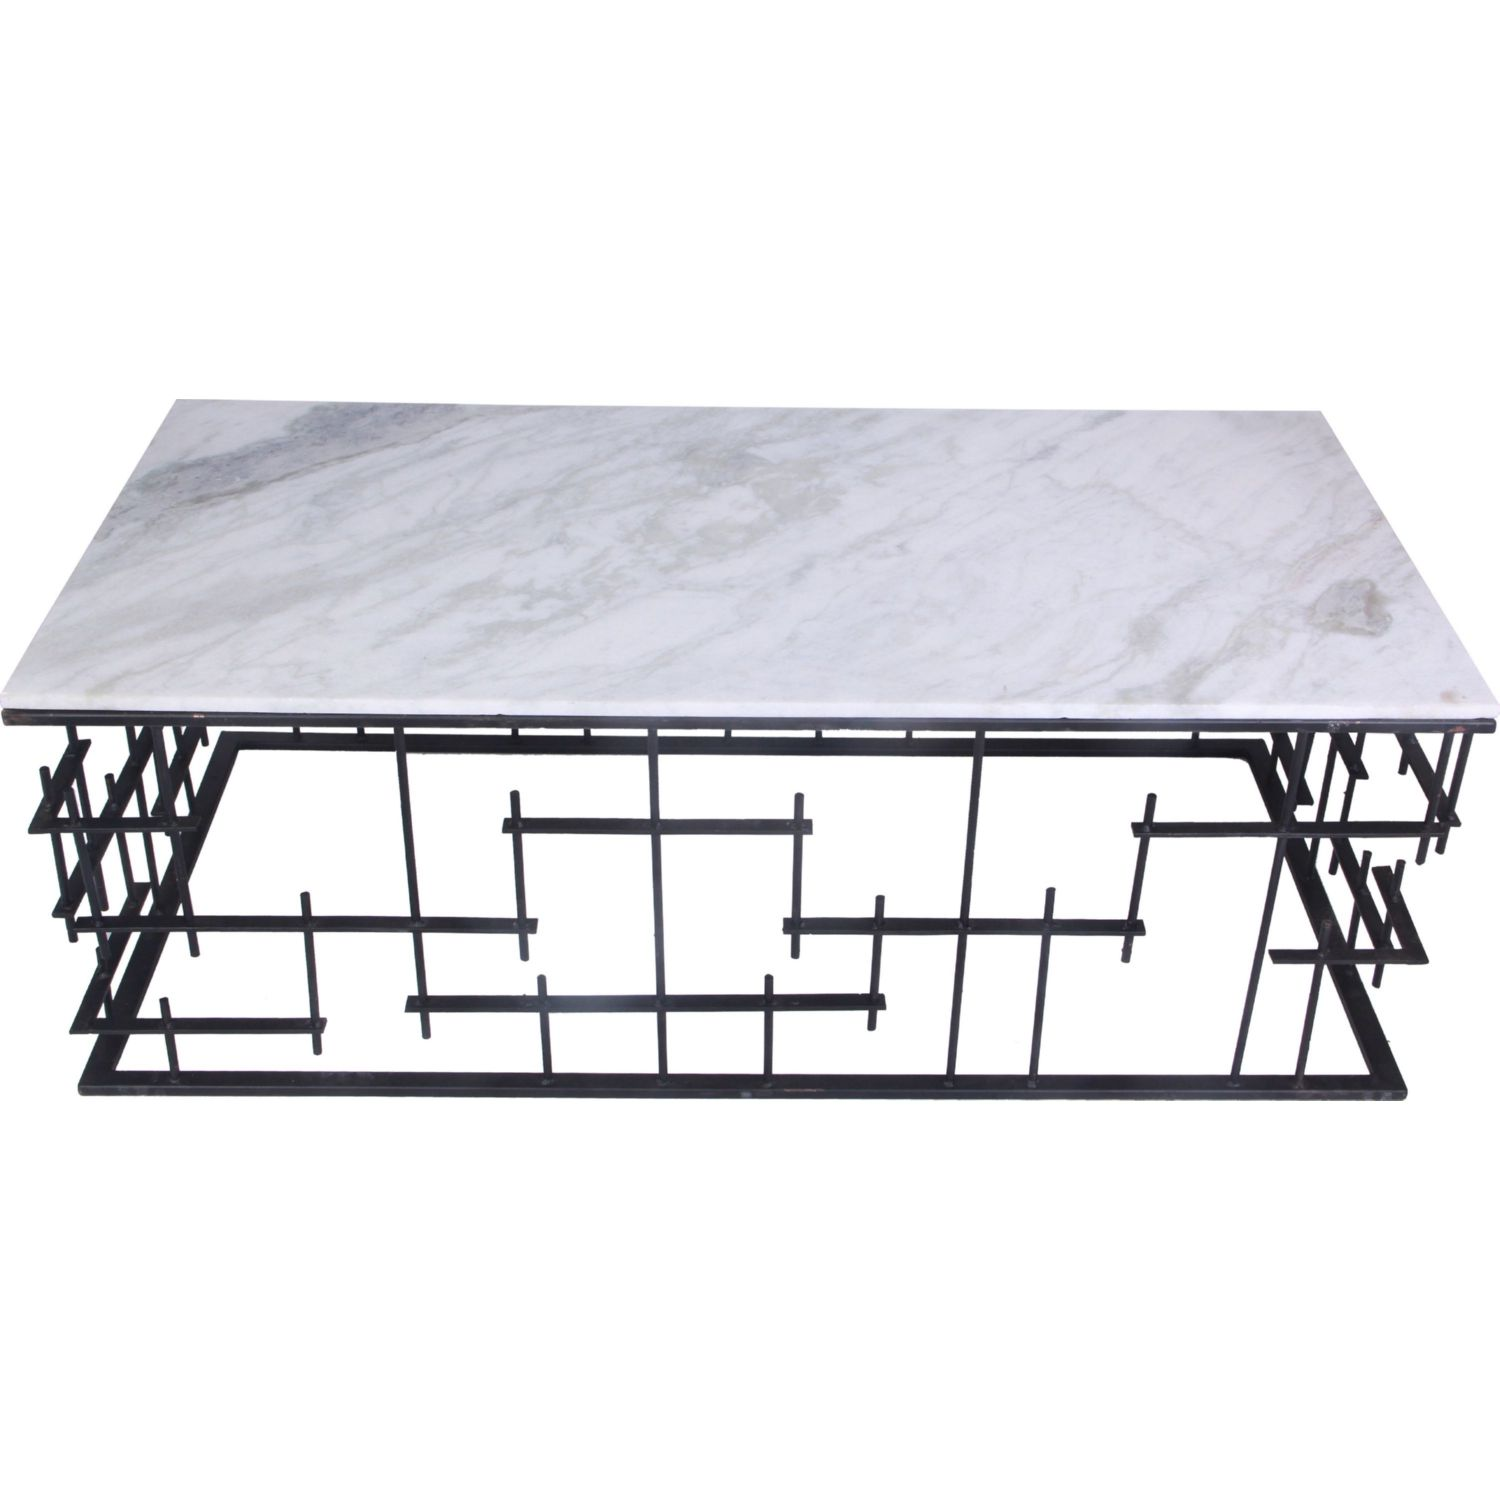 Matrix Coffee Table W/ Marble Top On Geometric Iron Base By Moeu0027s Home  Collection